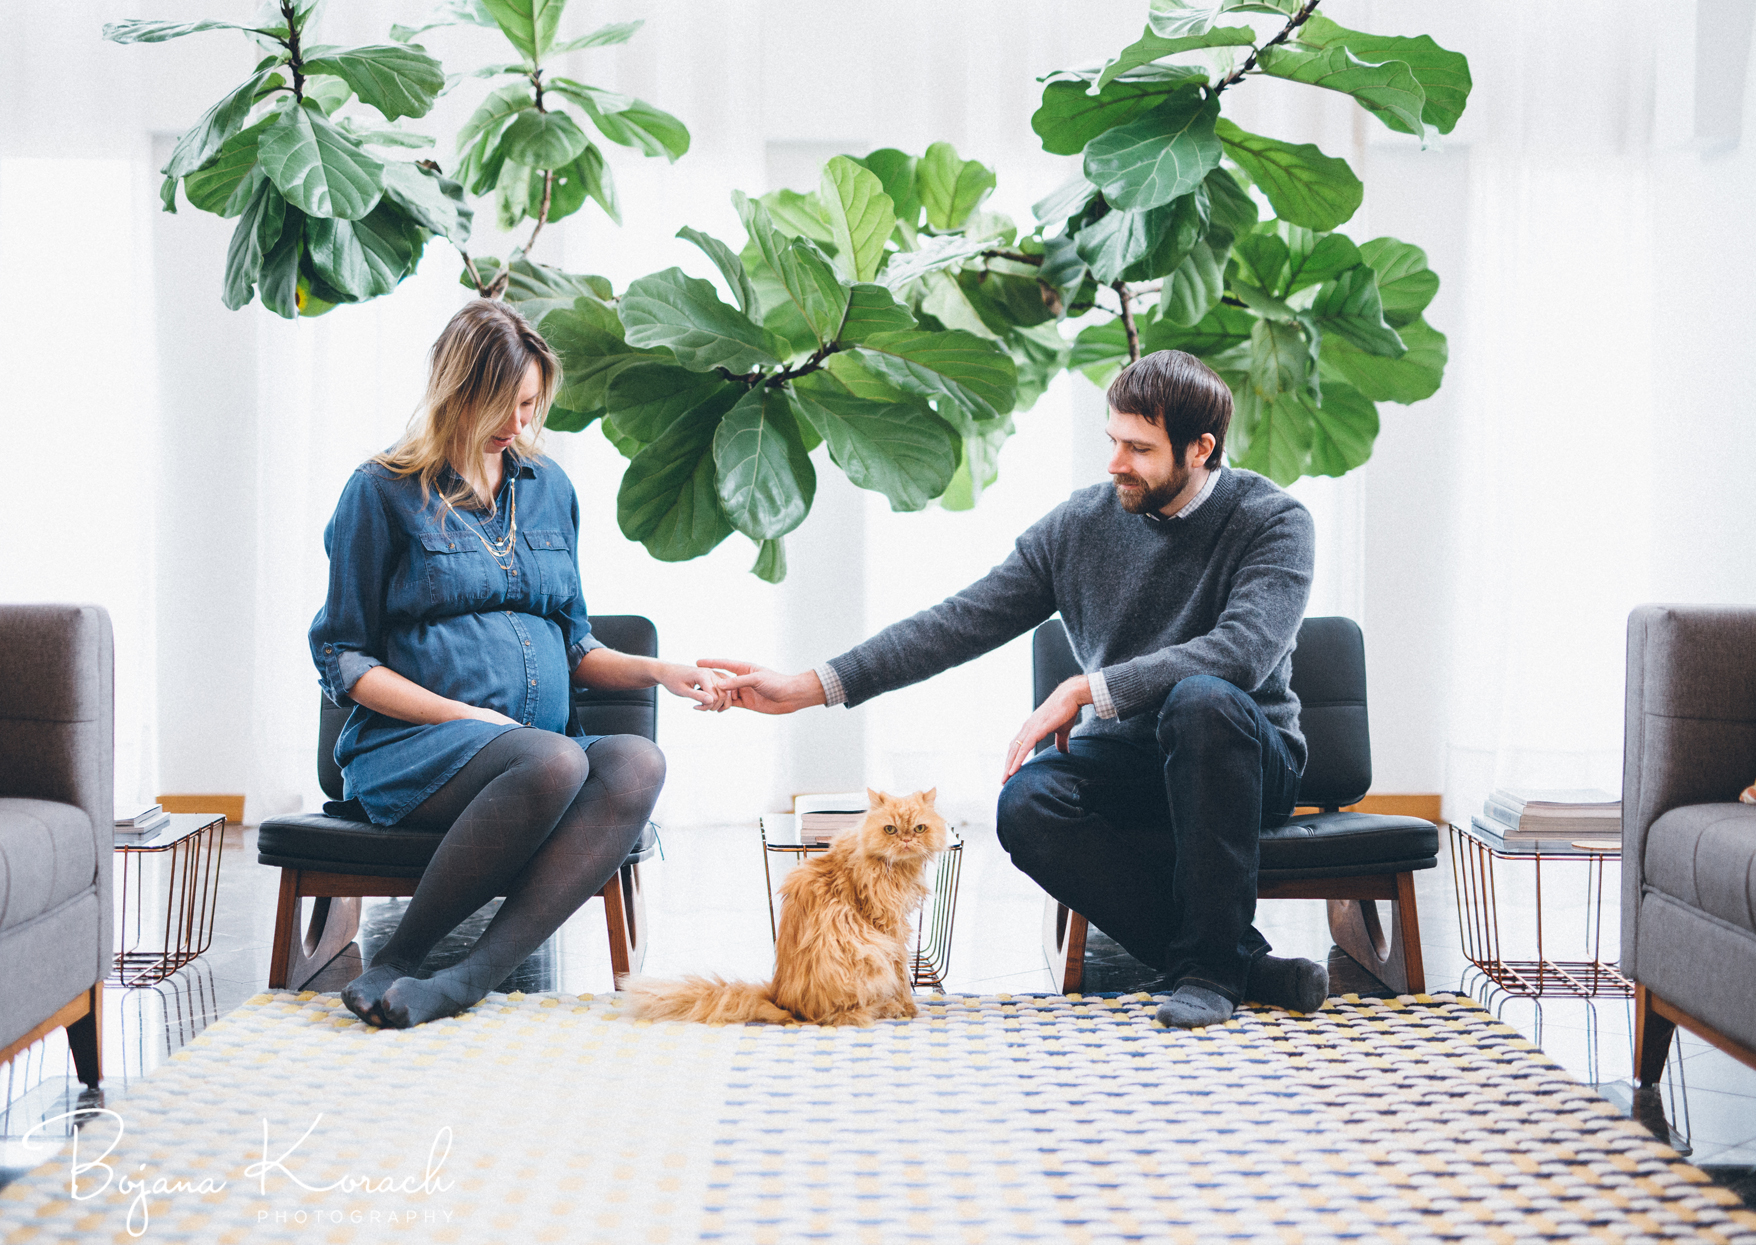 wes anderson inspired maternity photography session